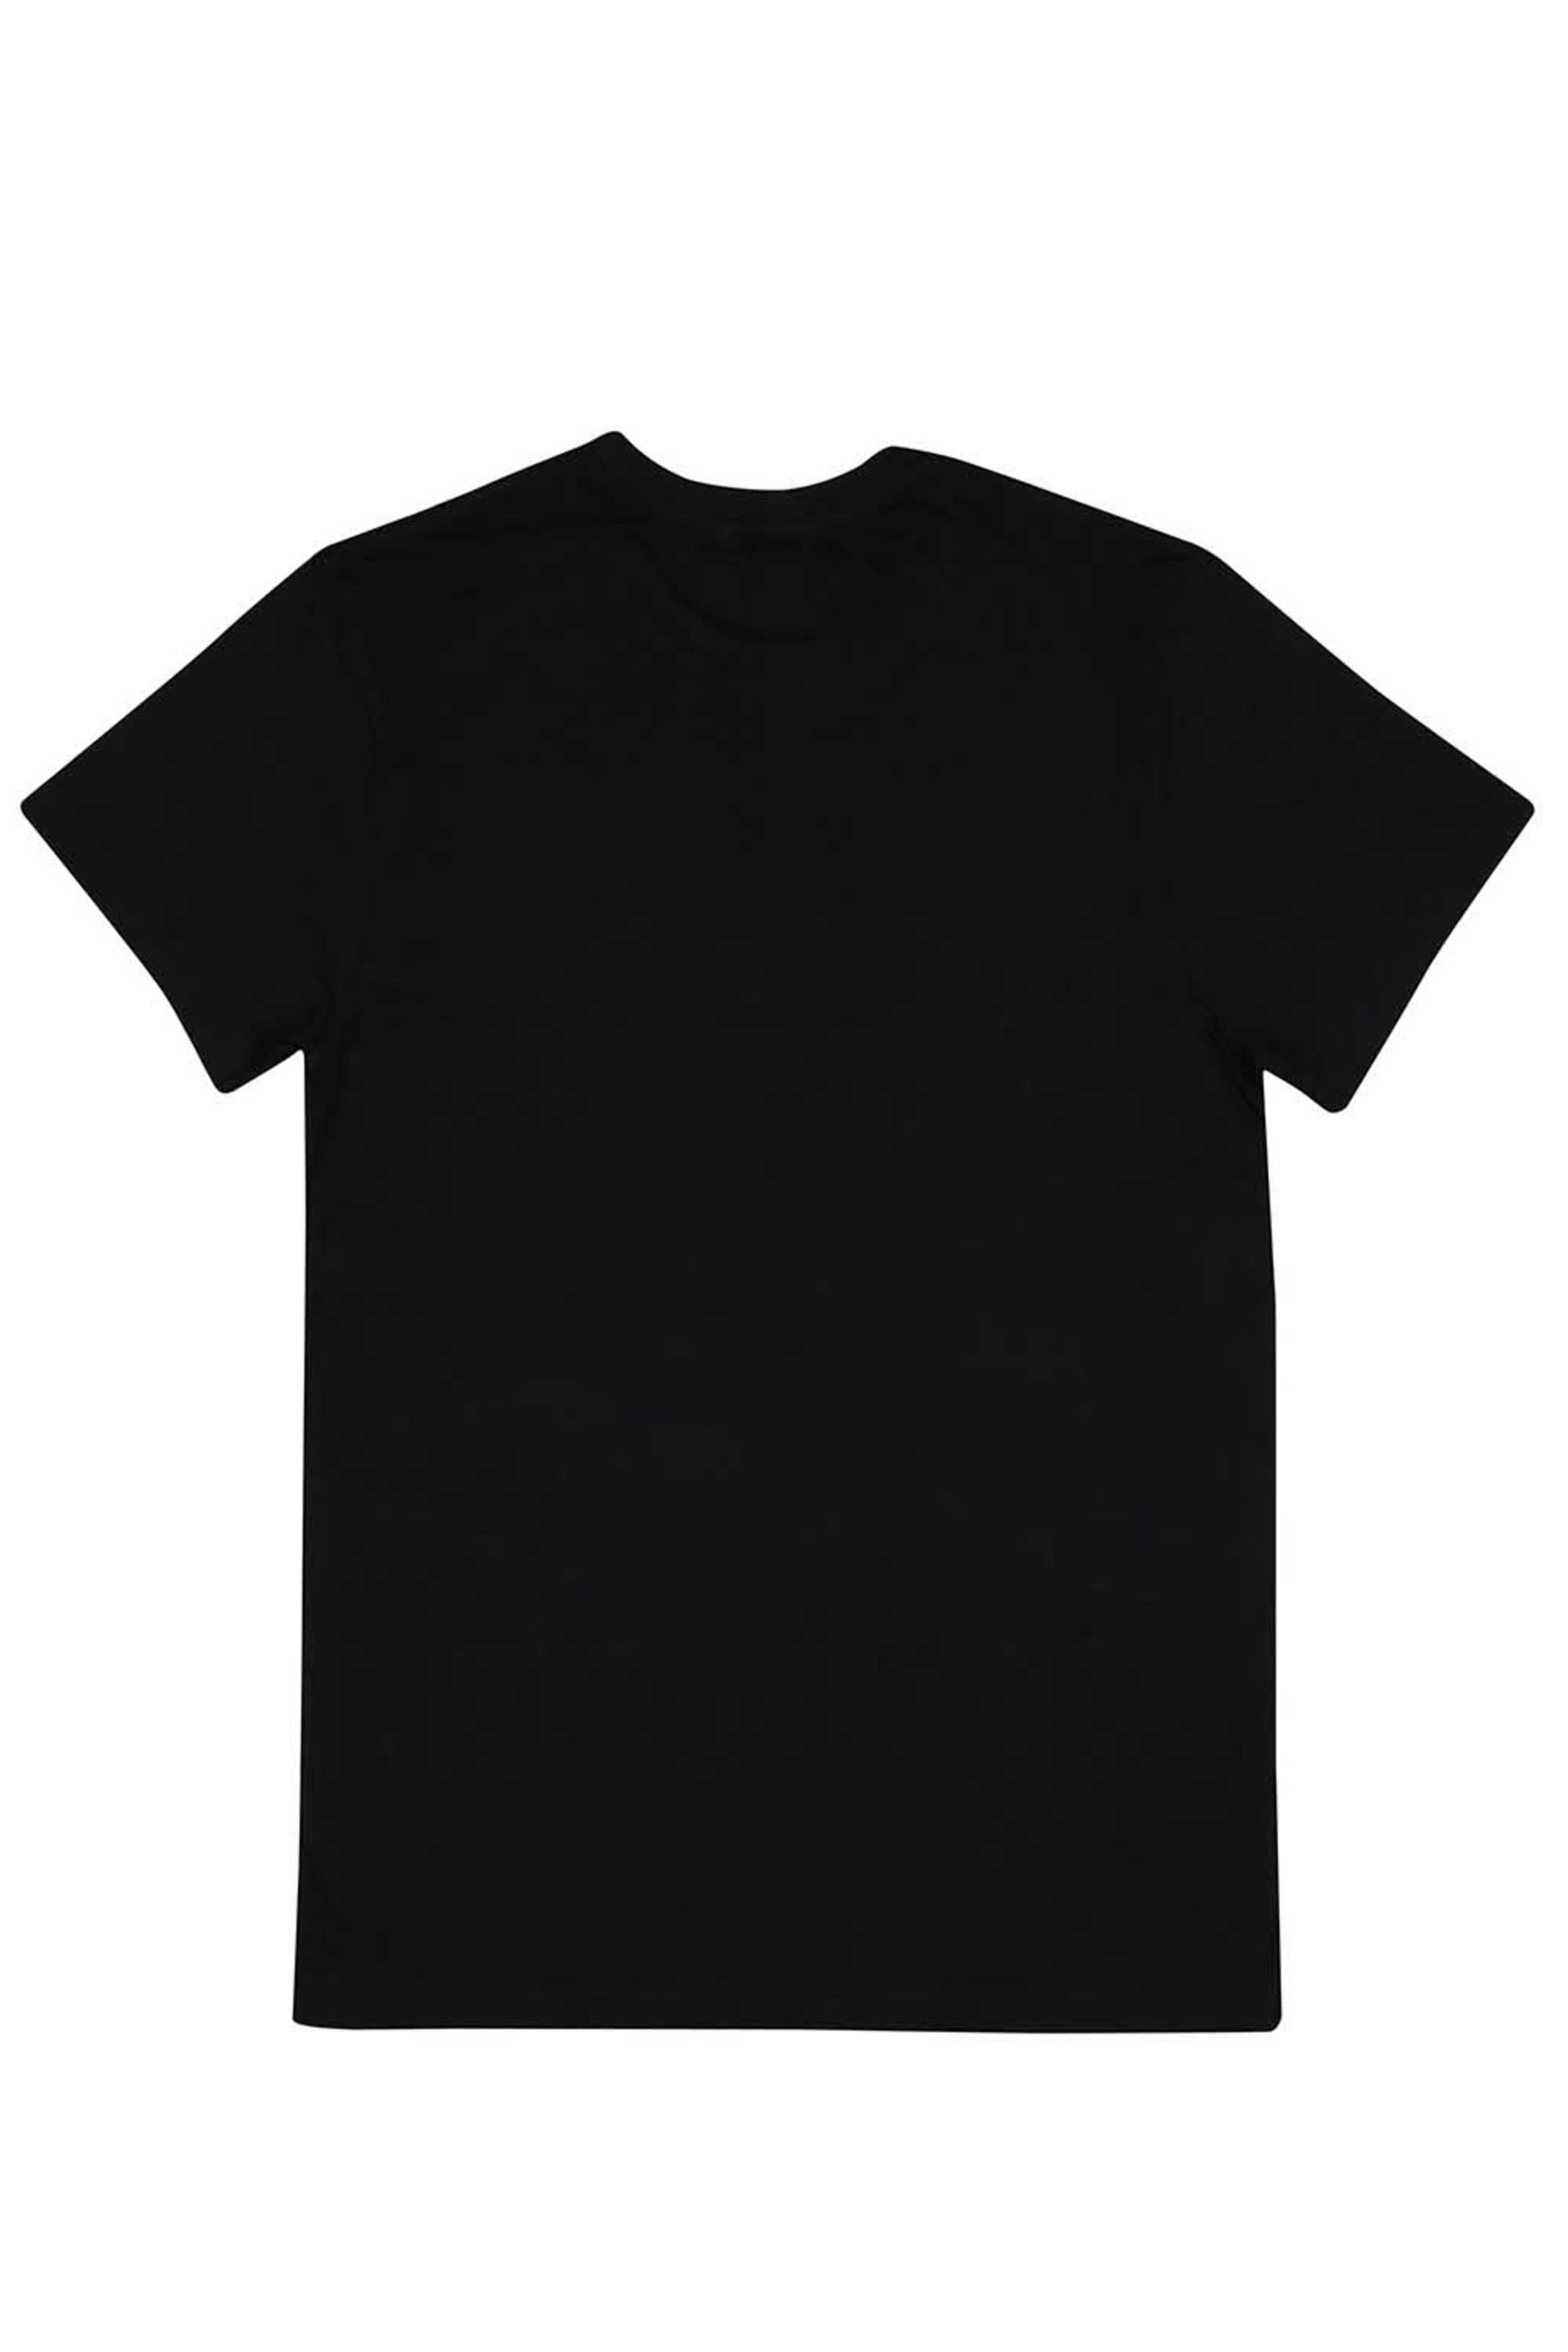 Mens Short Sleeves Round Neck Slim Fit Solid T-Shirt